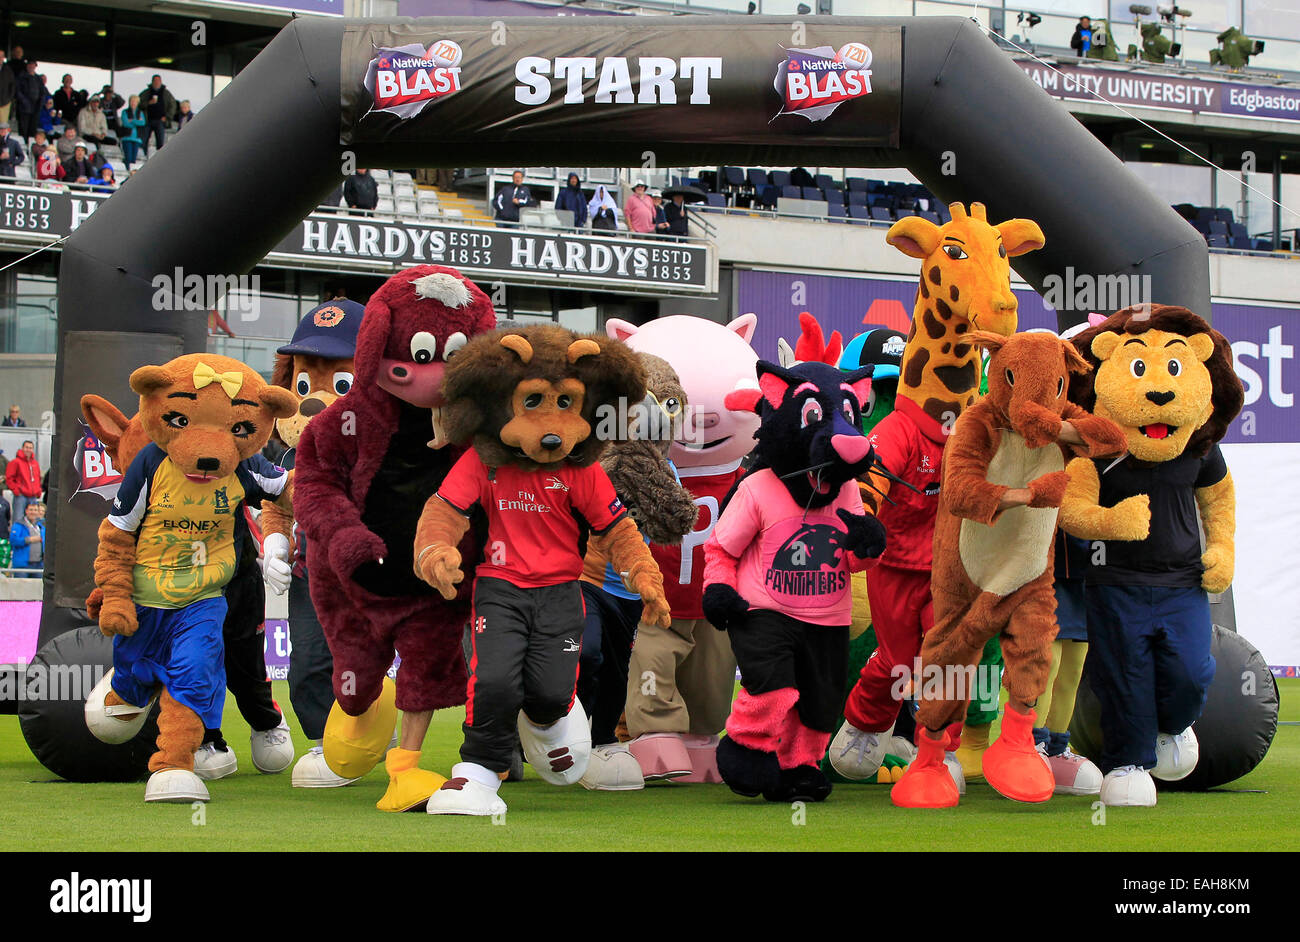 Cricket - The start of the NatWest T20 Blast Finals Day Mascot Race at Edgbaston in 2014 - Stock Image